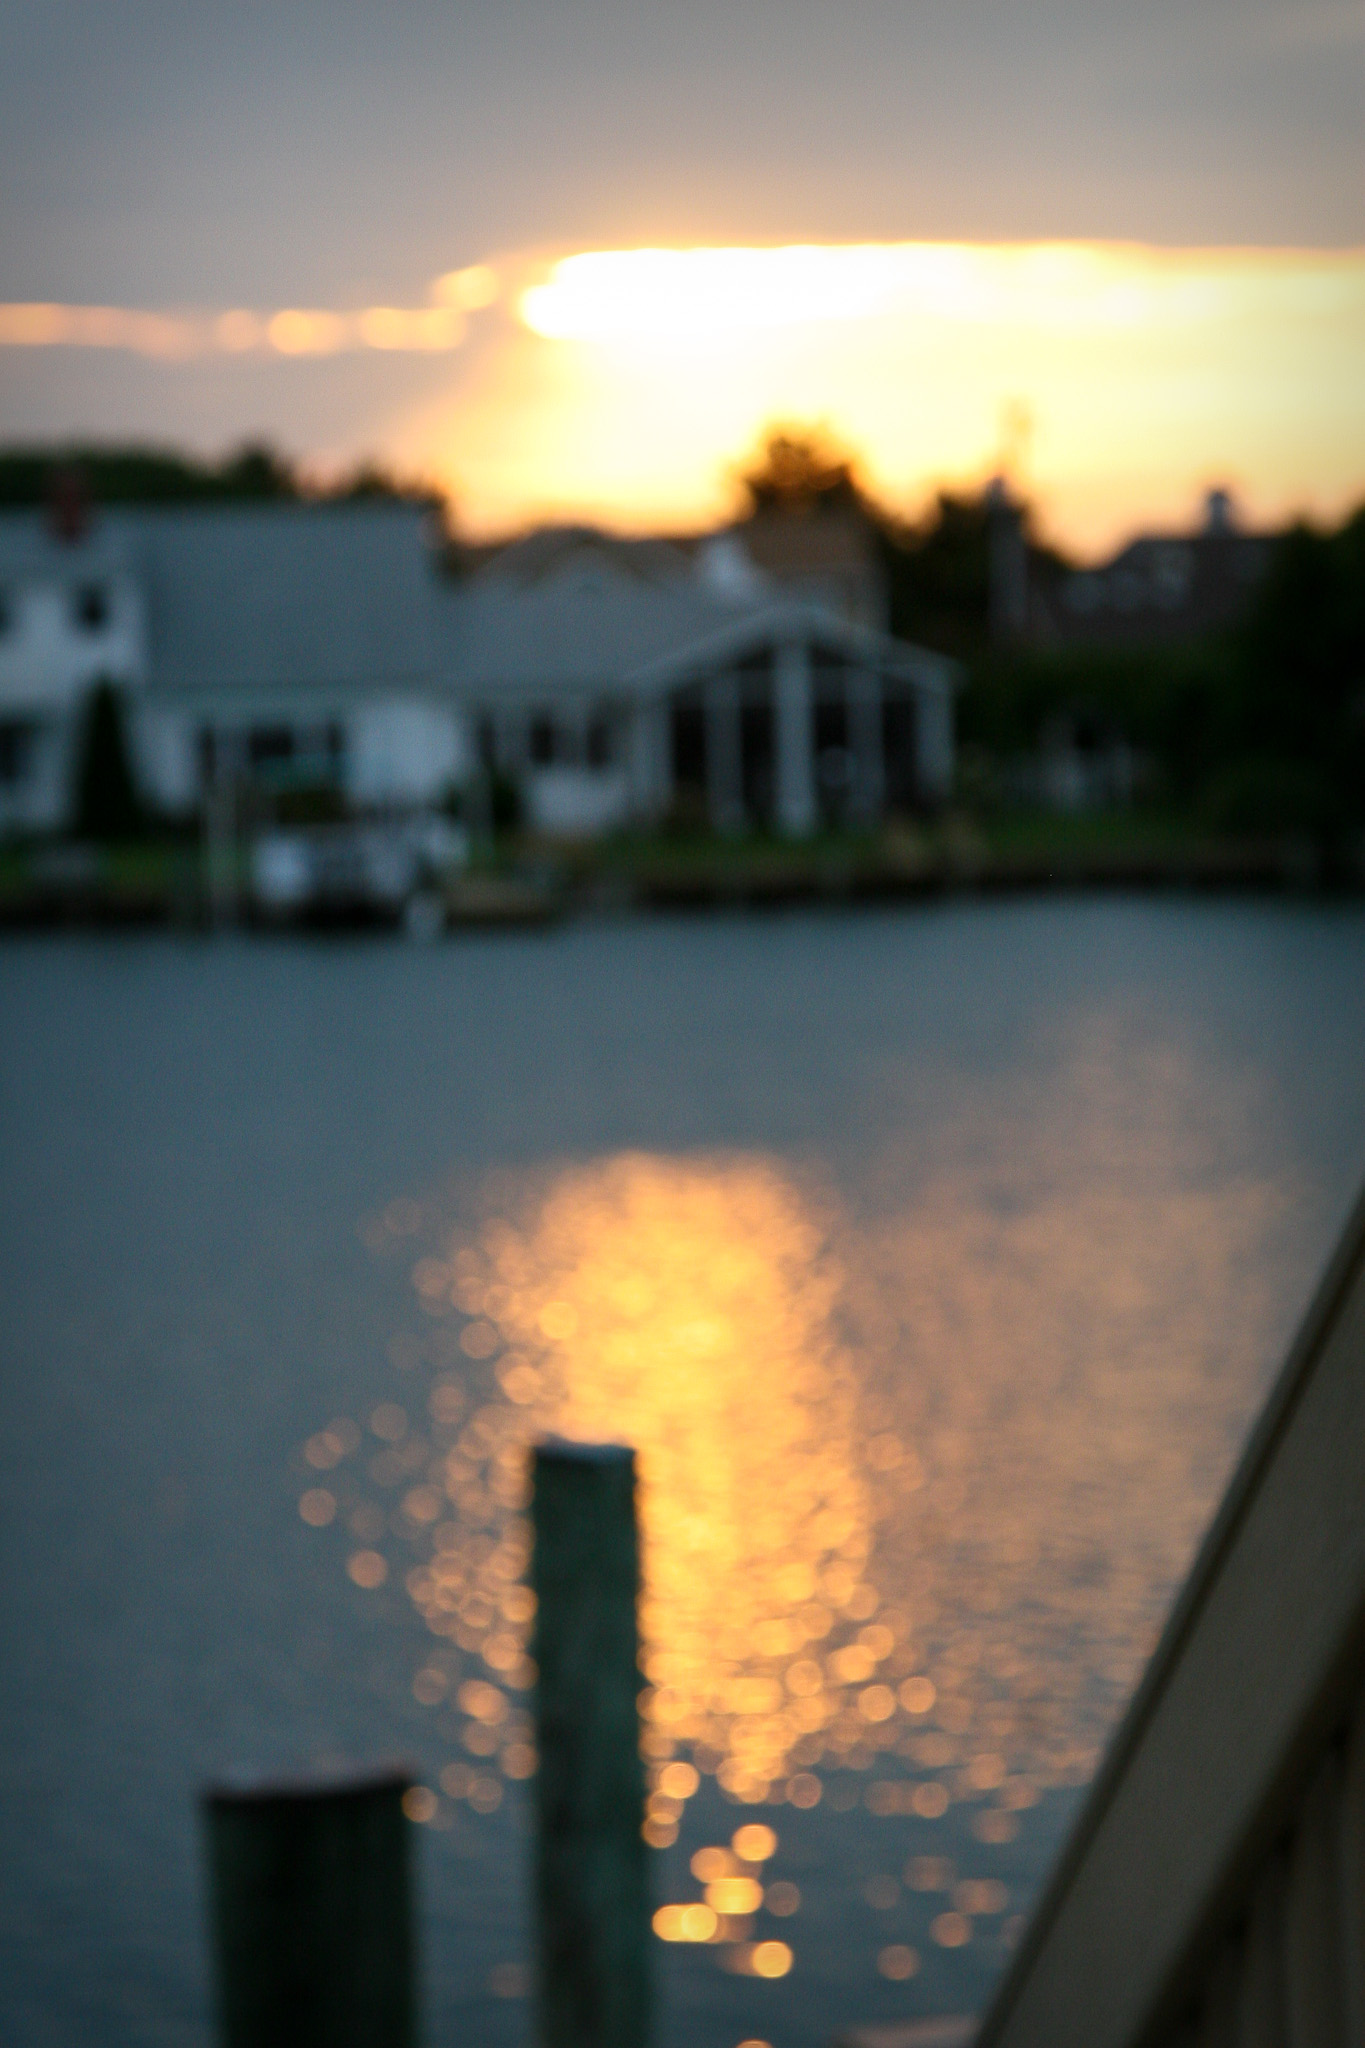 Ocean City, Maryland - August 2011